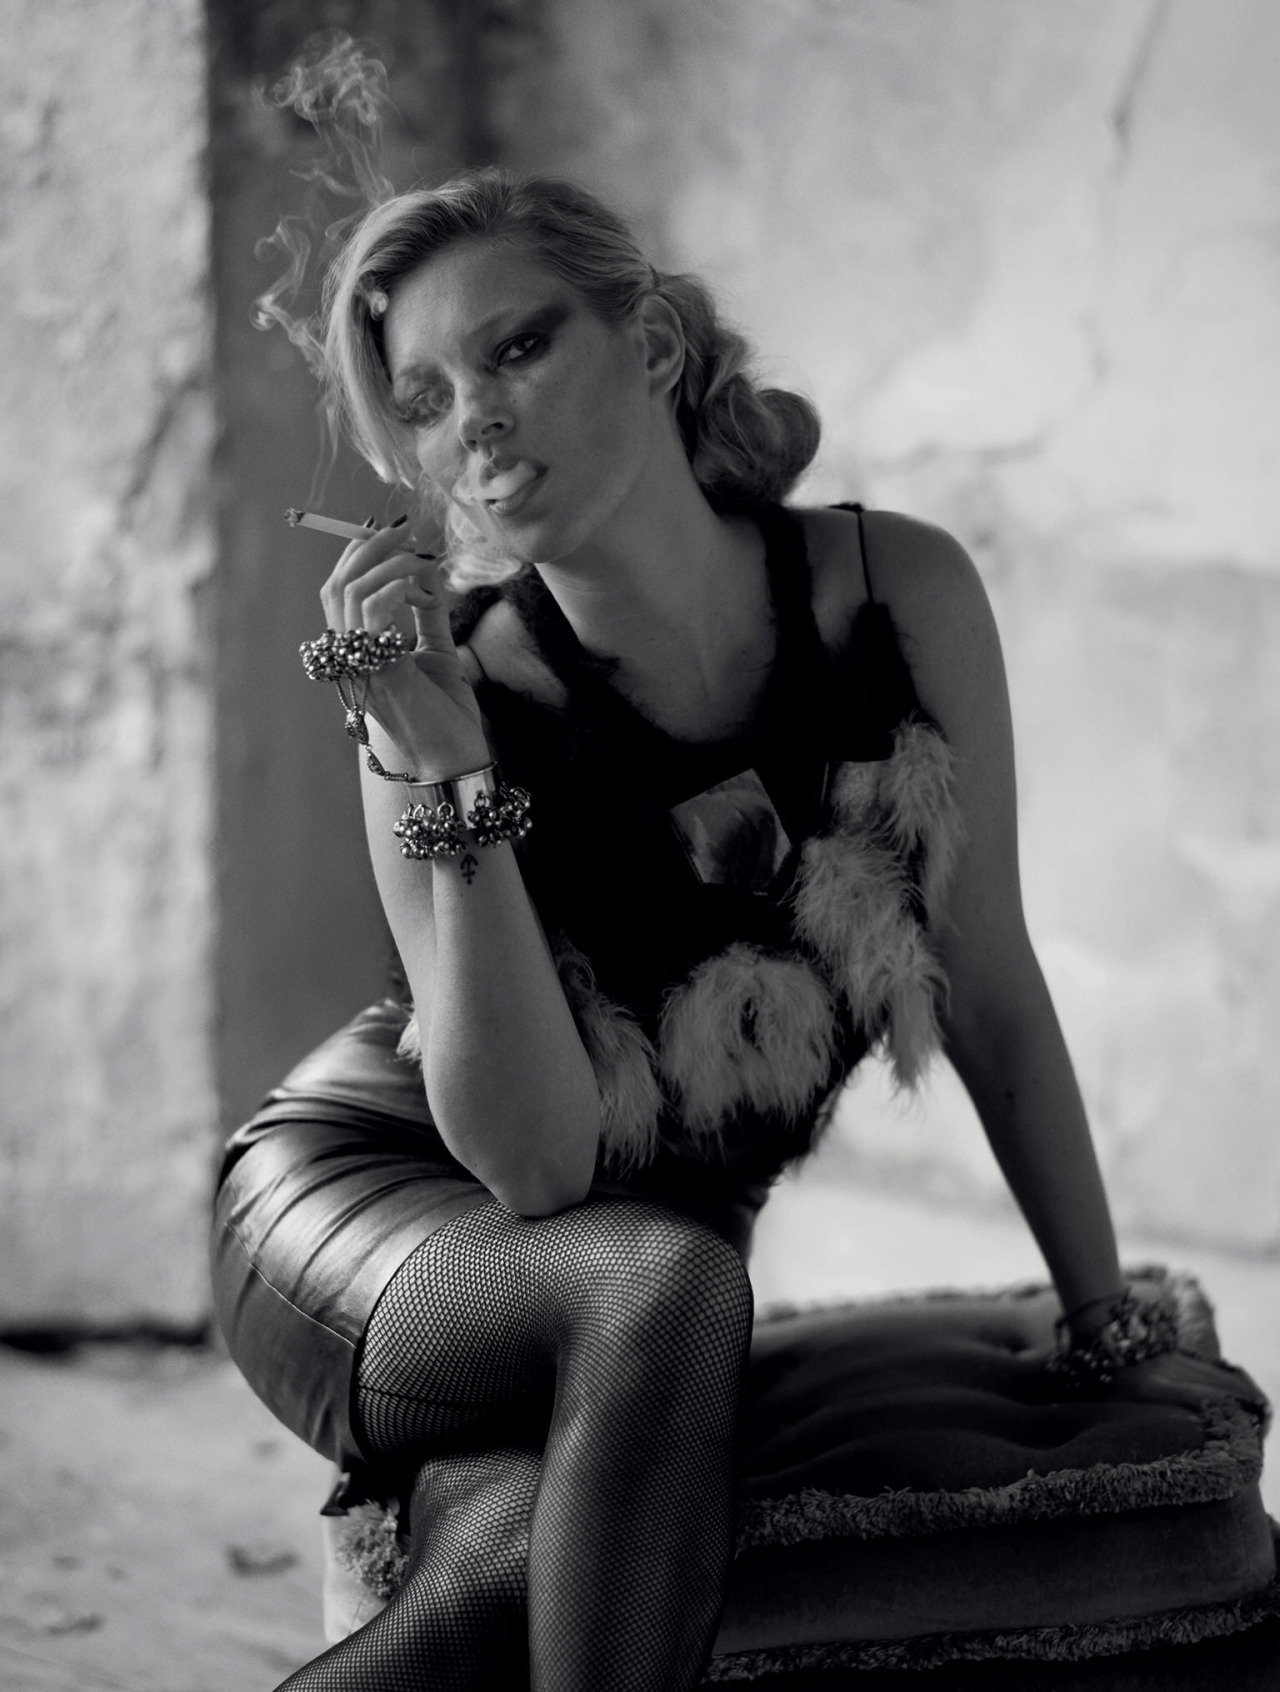 kate-moss-by-ethan-james-green-2